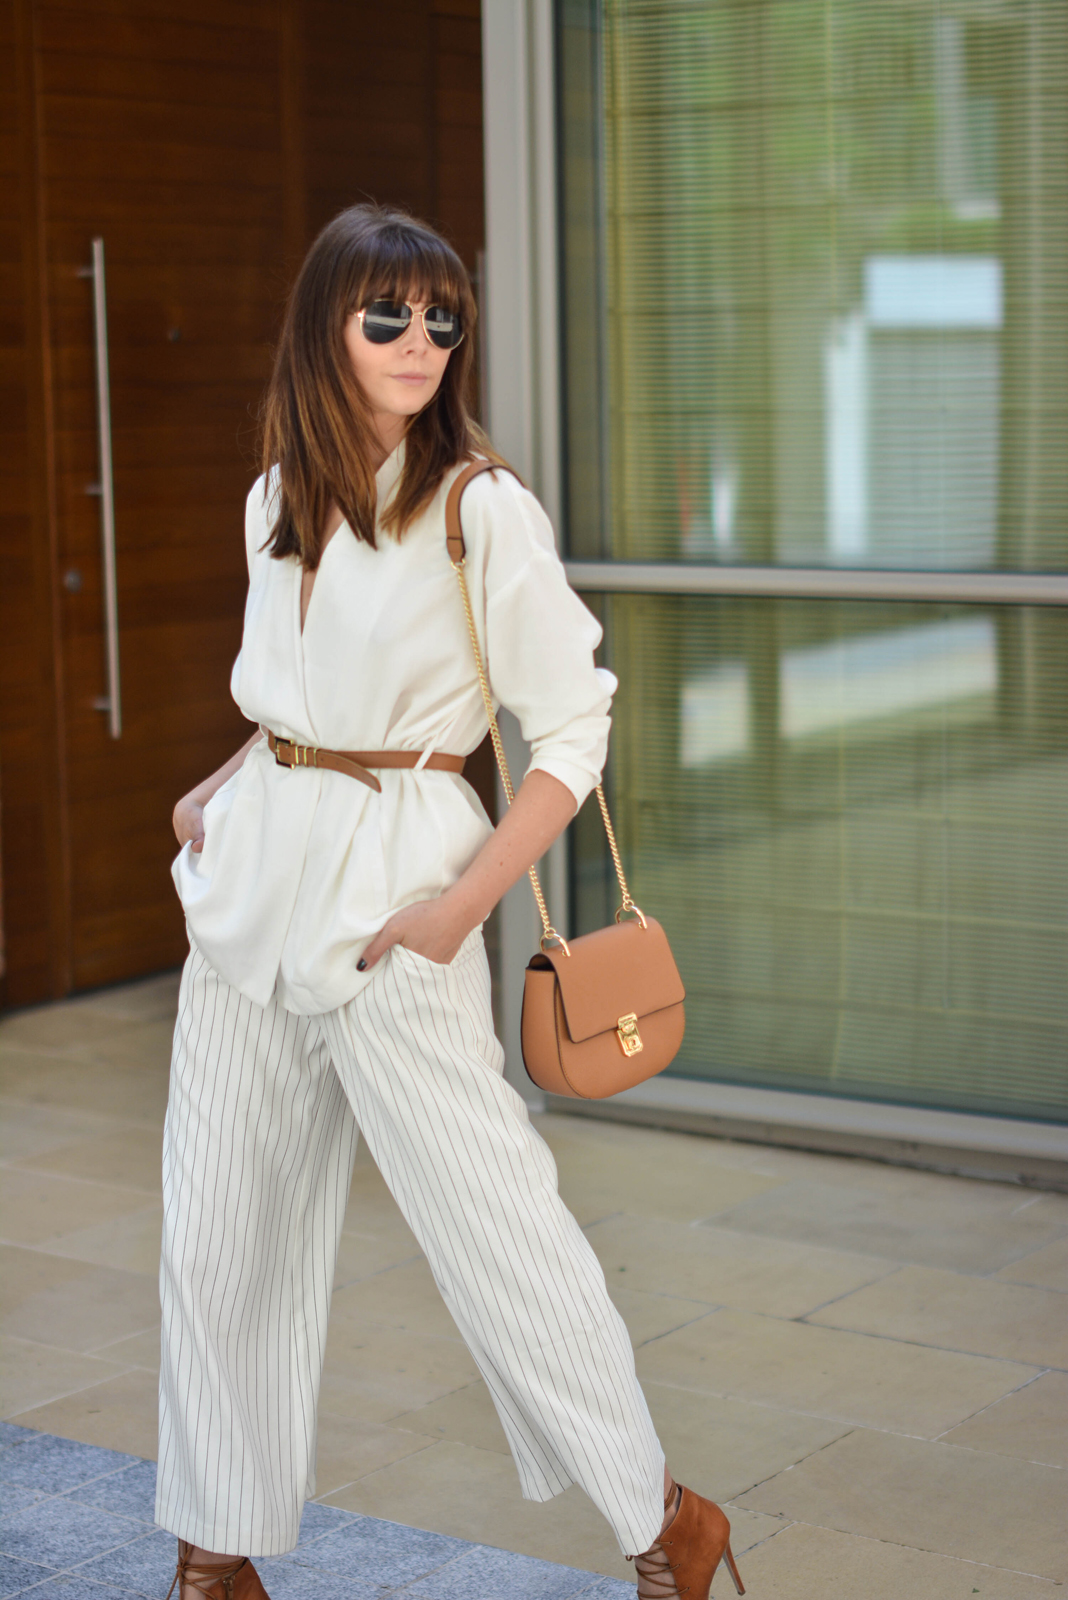 EJSTYLE - Emma Hill wearing Gestuz white wrap jacket, tan skinny waist belt, Finders Keepers white pinstripe wide leg culottes, Tan Chloe 'drew' dupe bag, aviator sunglasses